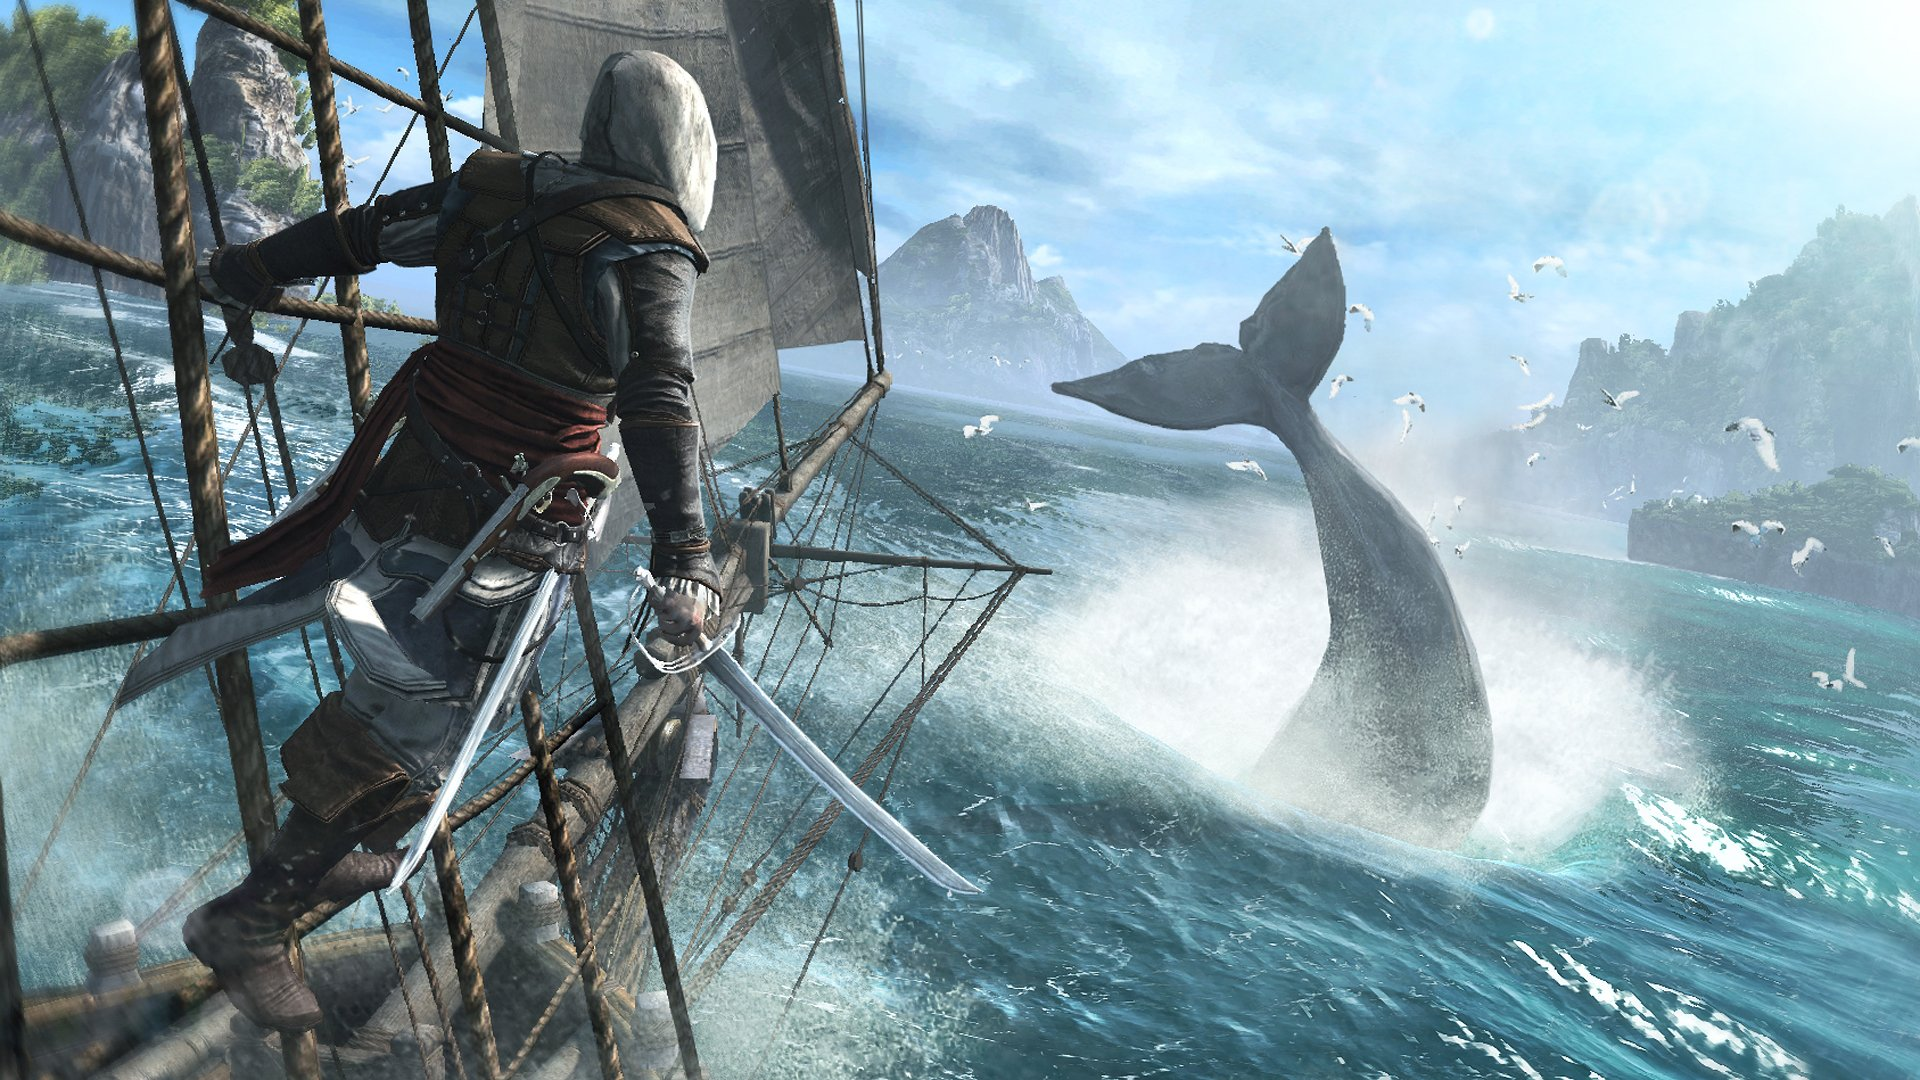 file_59217_assassins-creed-iv-black-flag-preview-1